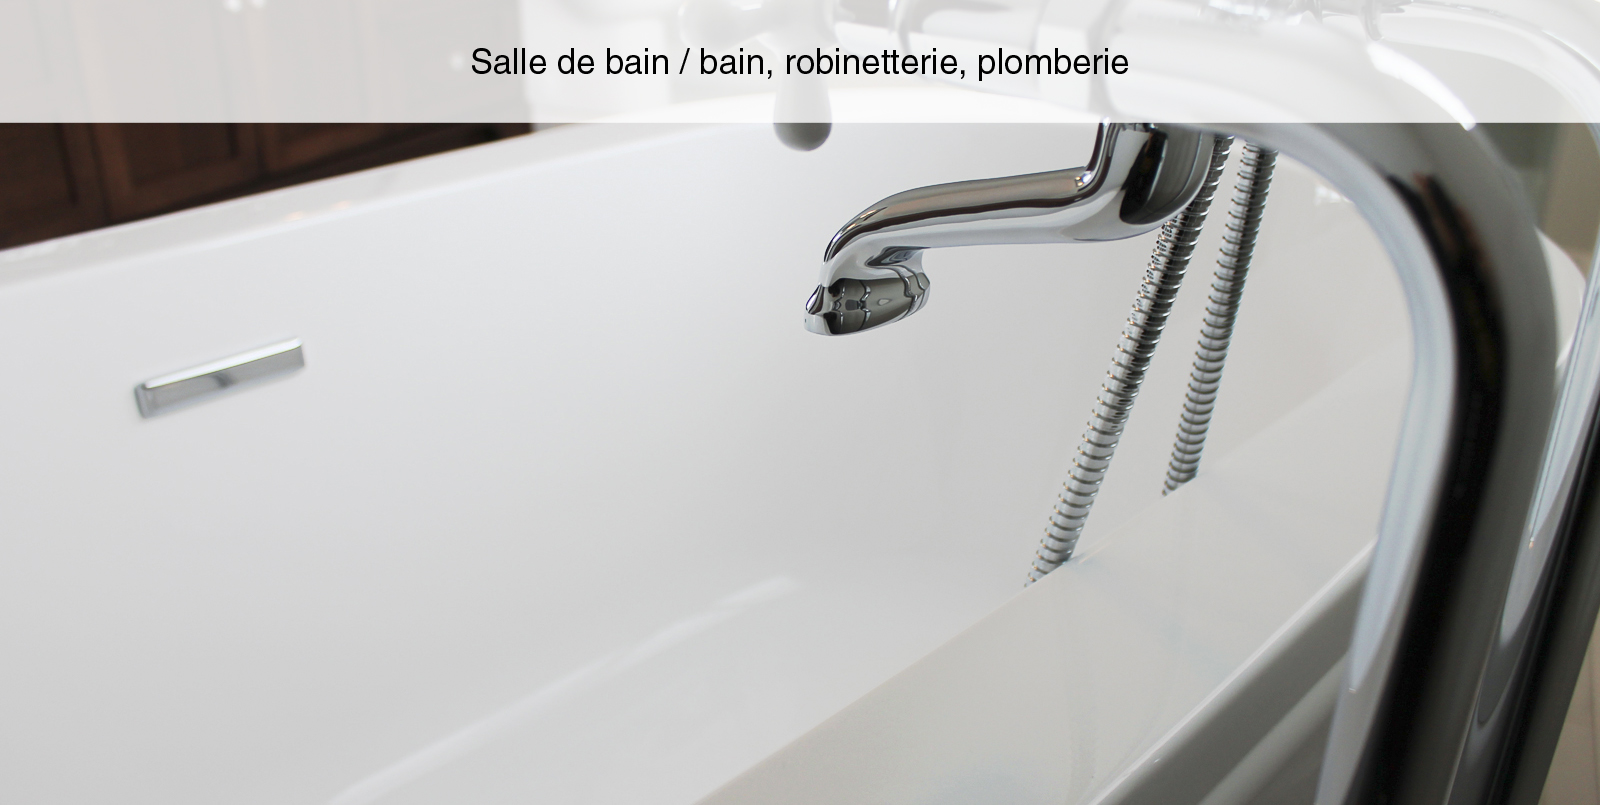 17-1-PANACHE-CONSTRUCTION-RENOVATION-BAIN-ROBINETTERIE-PLOMBERIE